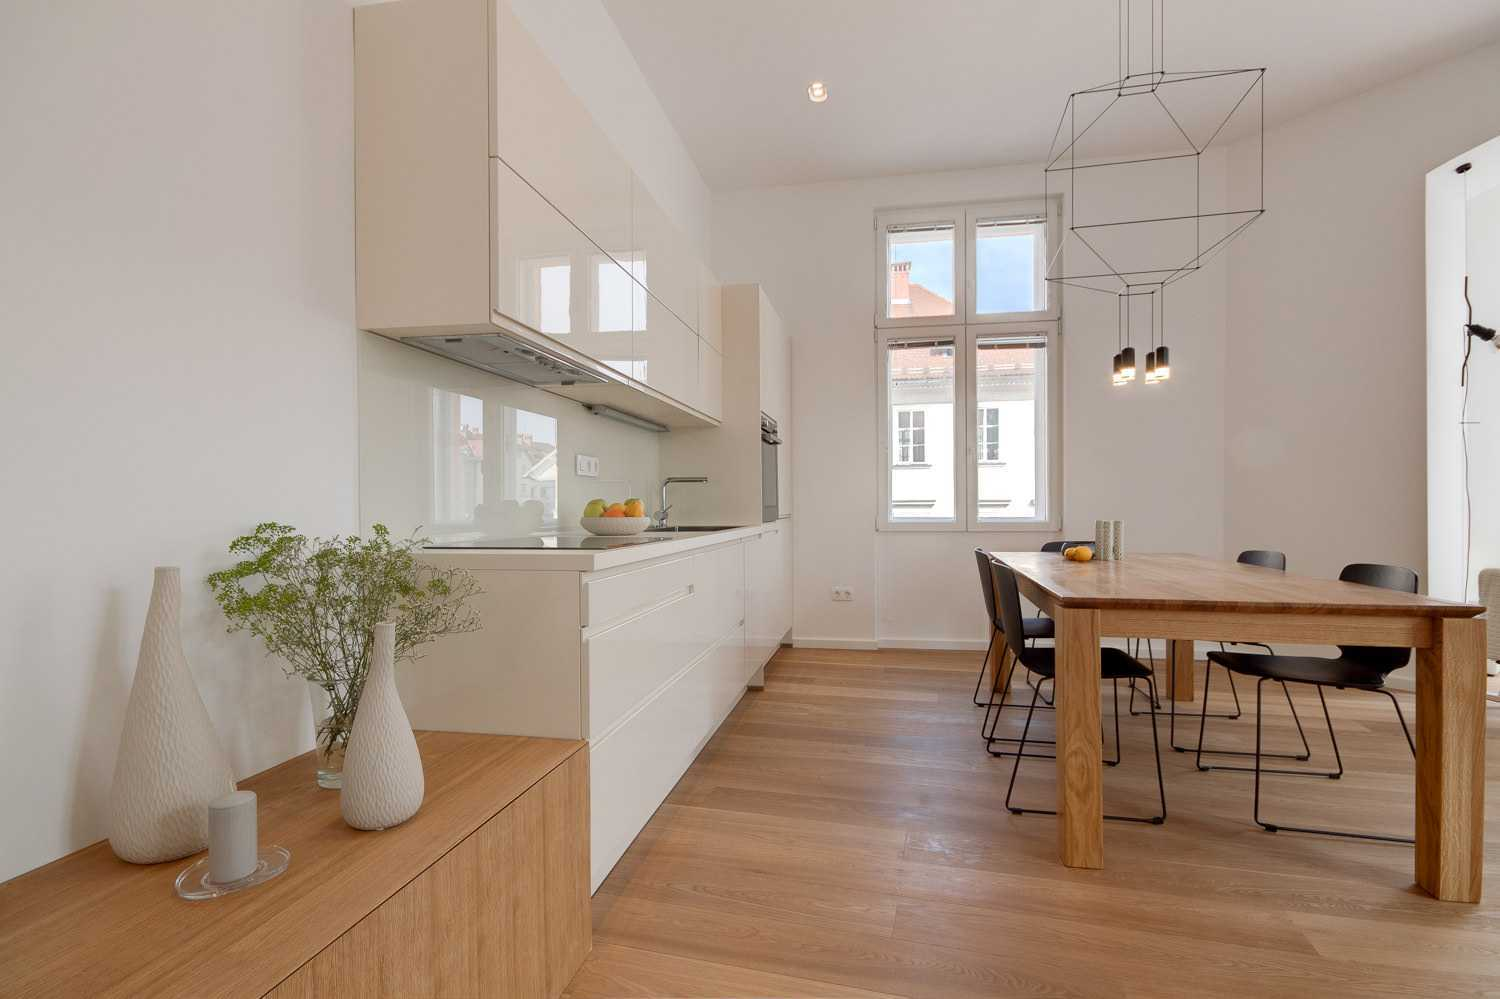 The kitchen is sleek and fully equipped.